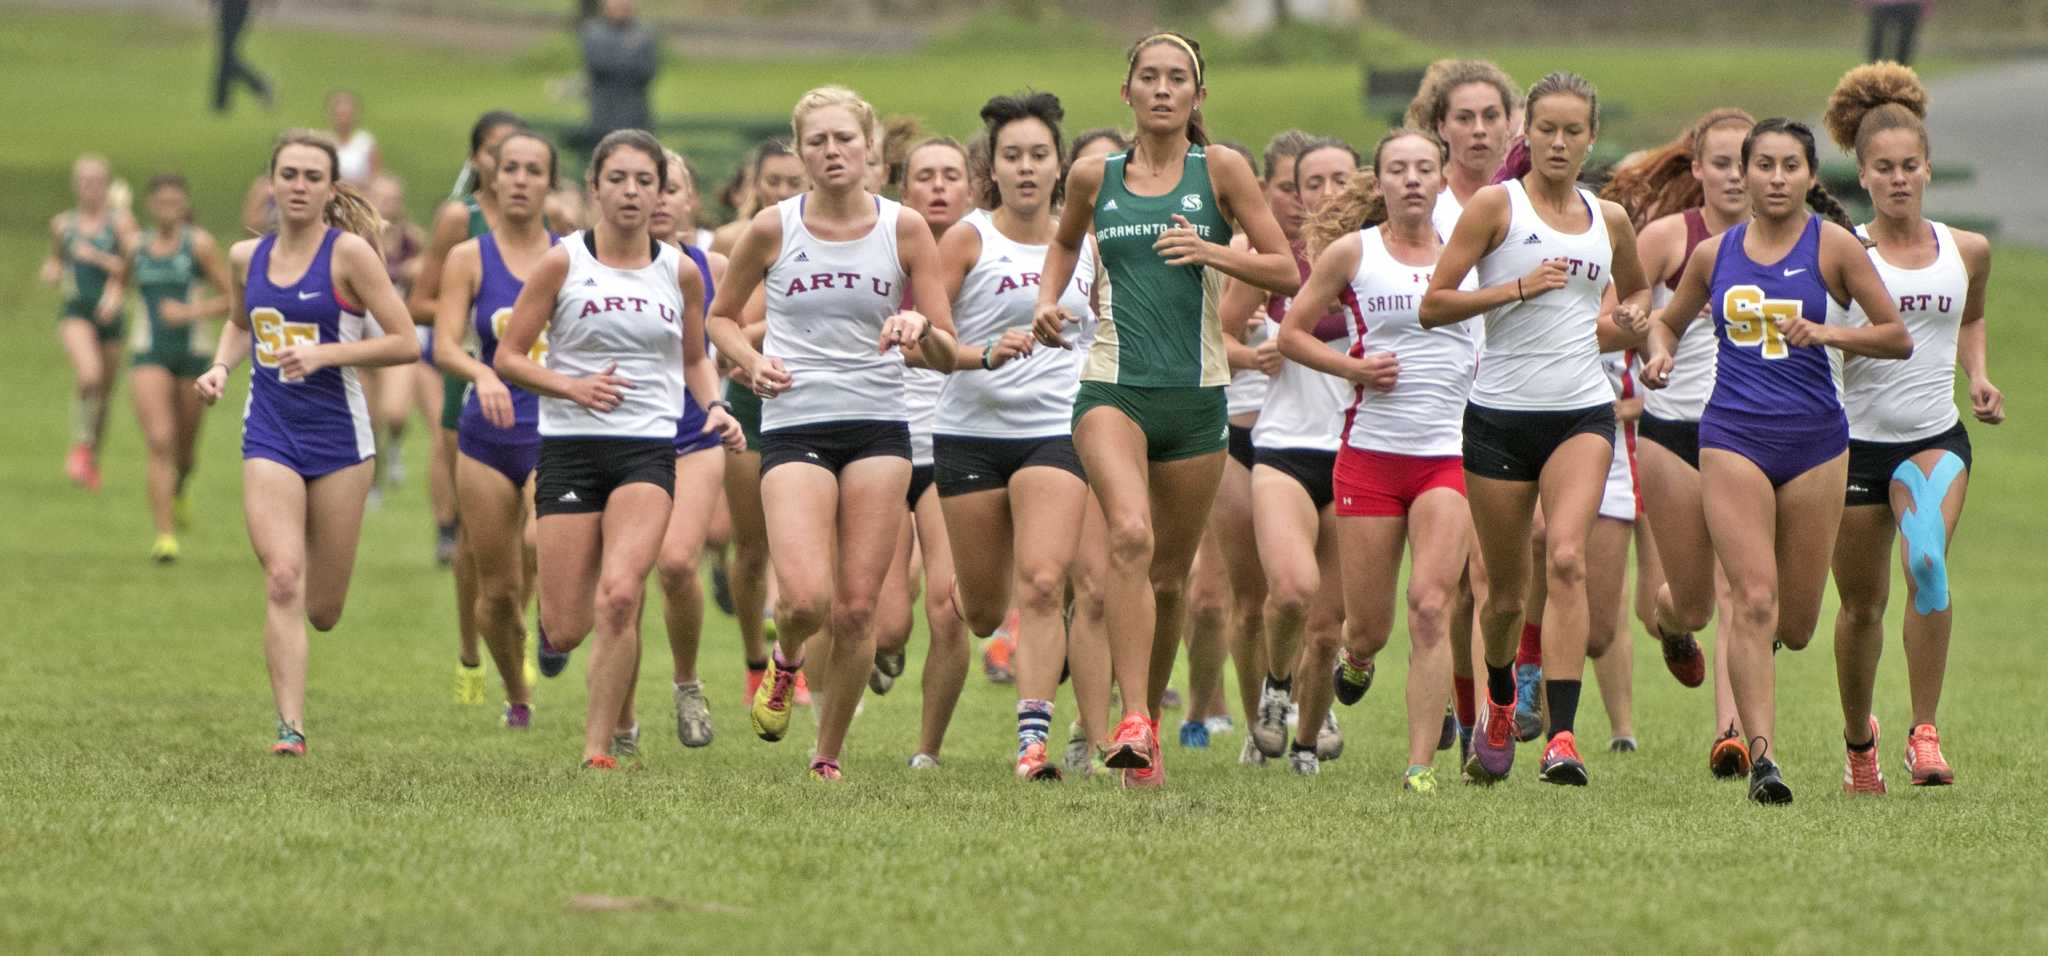 SF State Gators' junior Magali Arsiniega (second right) leads the race during the first loop of the 5800 meter race at Hellman Hallow Meadow in Golden Gate Park on Thursday, Sept. 15, 2016. Arsiniega finished the race in 14 place with a time of 23:00.00.